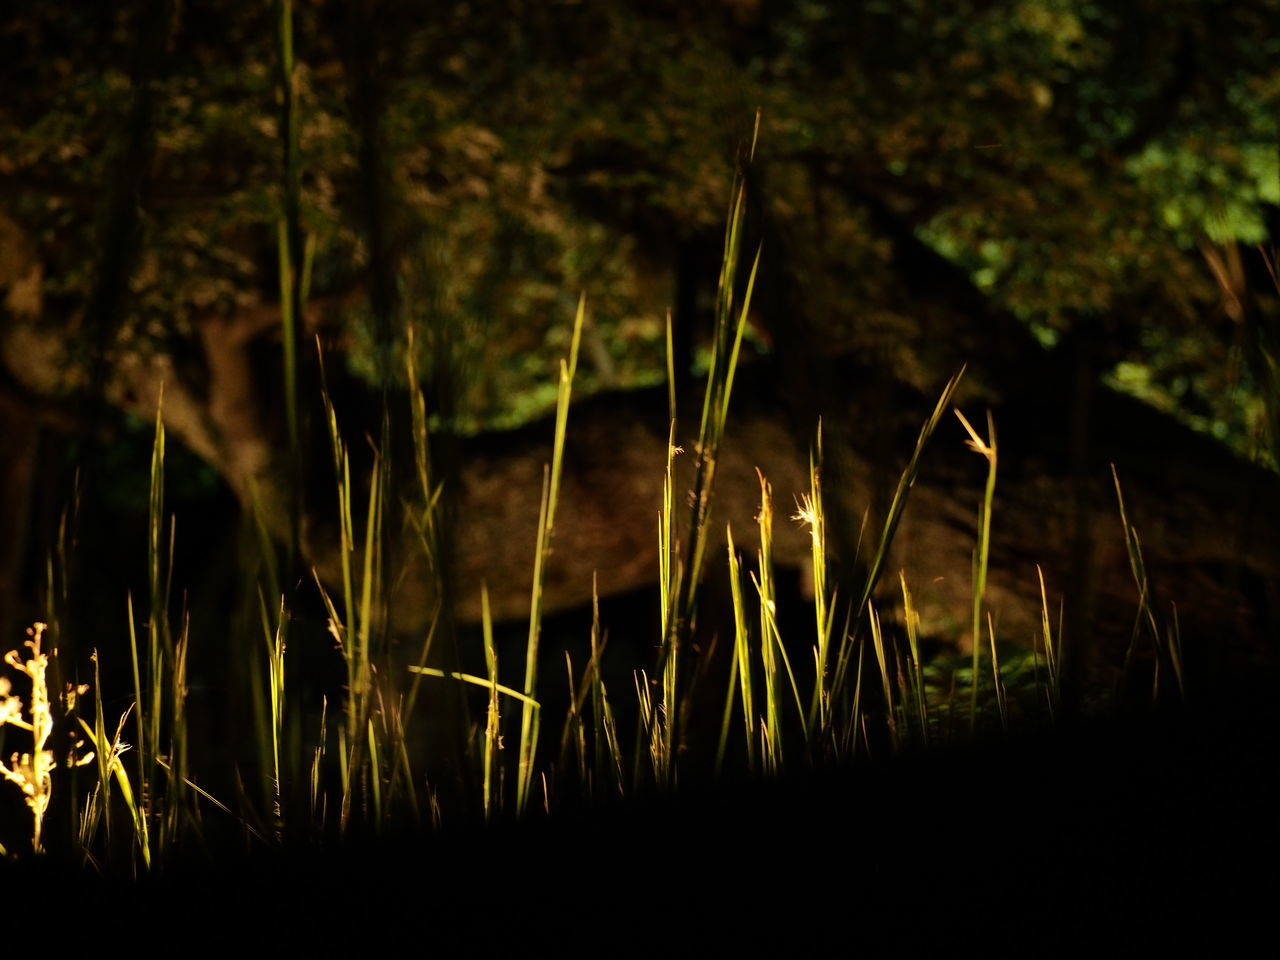 Nature Growth Plant Grass No People Outdoors Beauty In Nature Close-up Day Japan Backgrounds Spotted Low Angle View Night Night Photography Night Lights Night Light Night View Light Nature Tree Kyoto NIght Lights Light And Dark Beauty In Nature Pattern